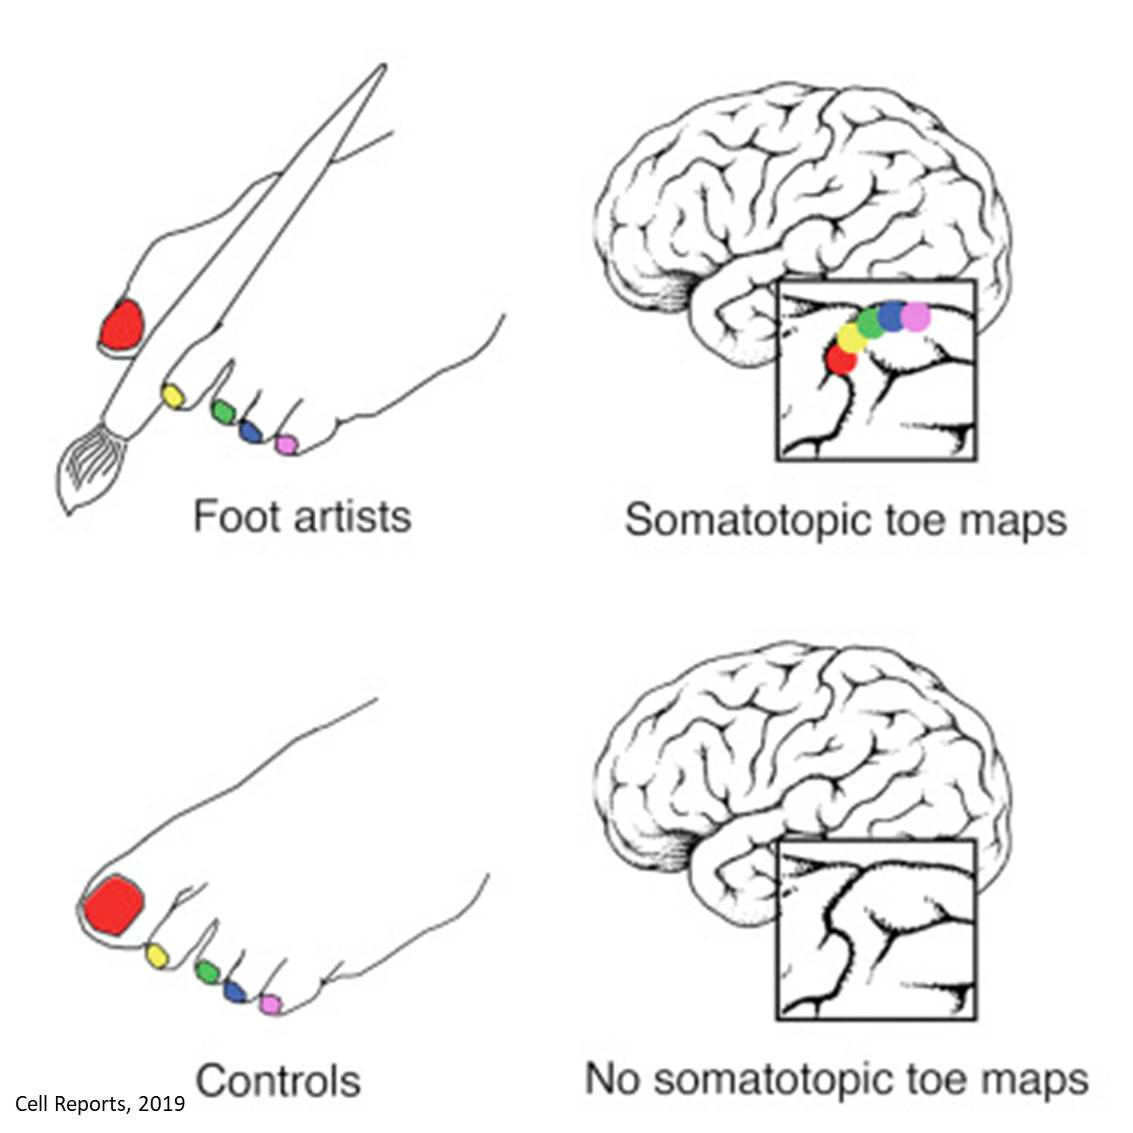 Feet map of the toe artist is mapped in the brain!